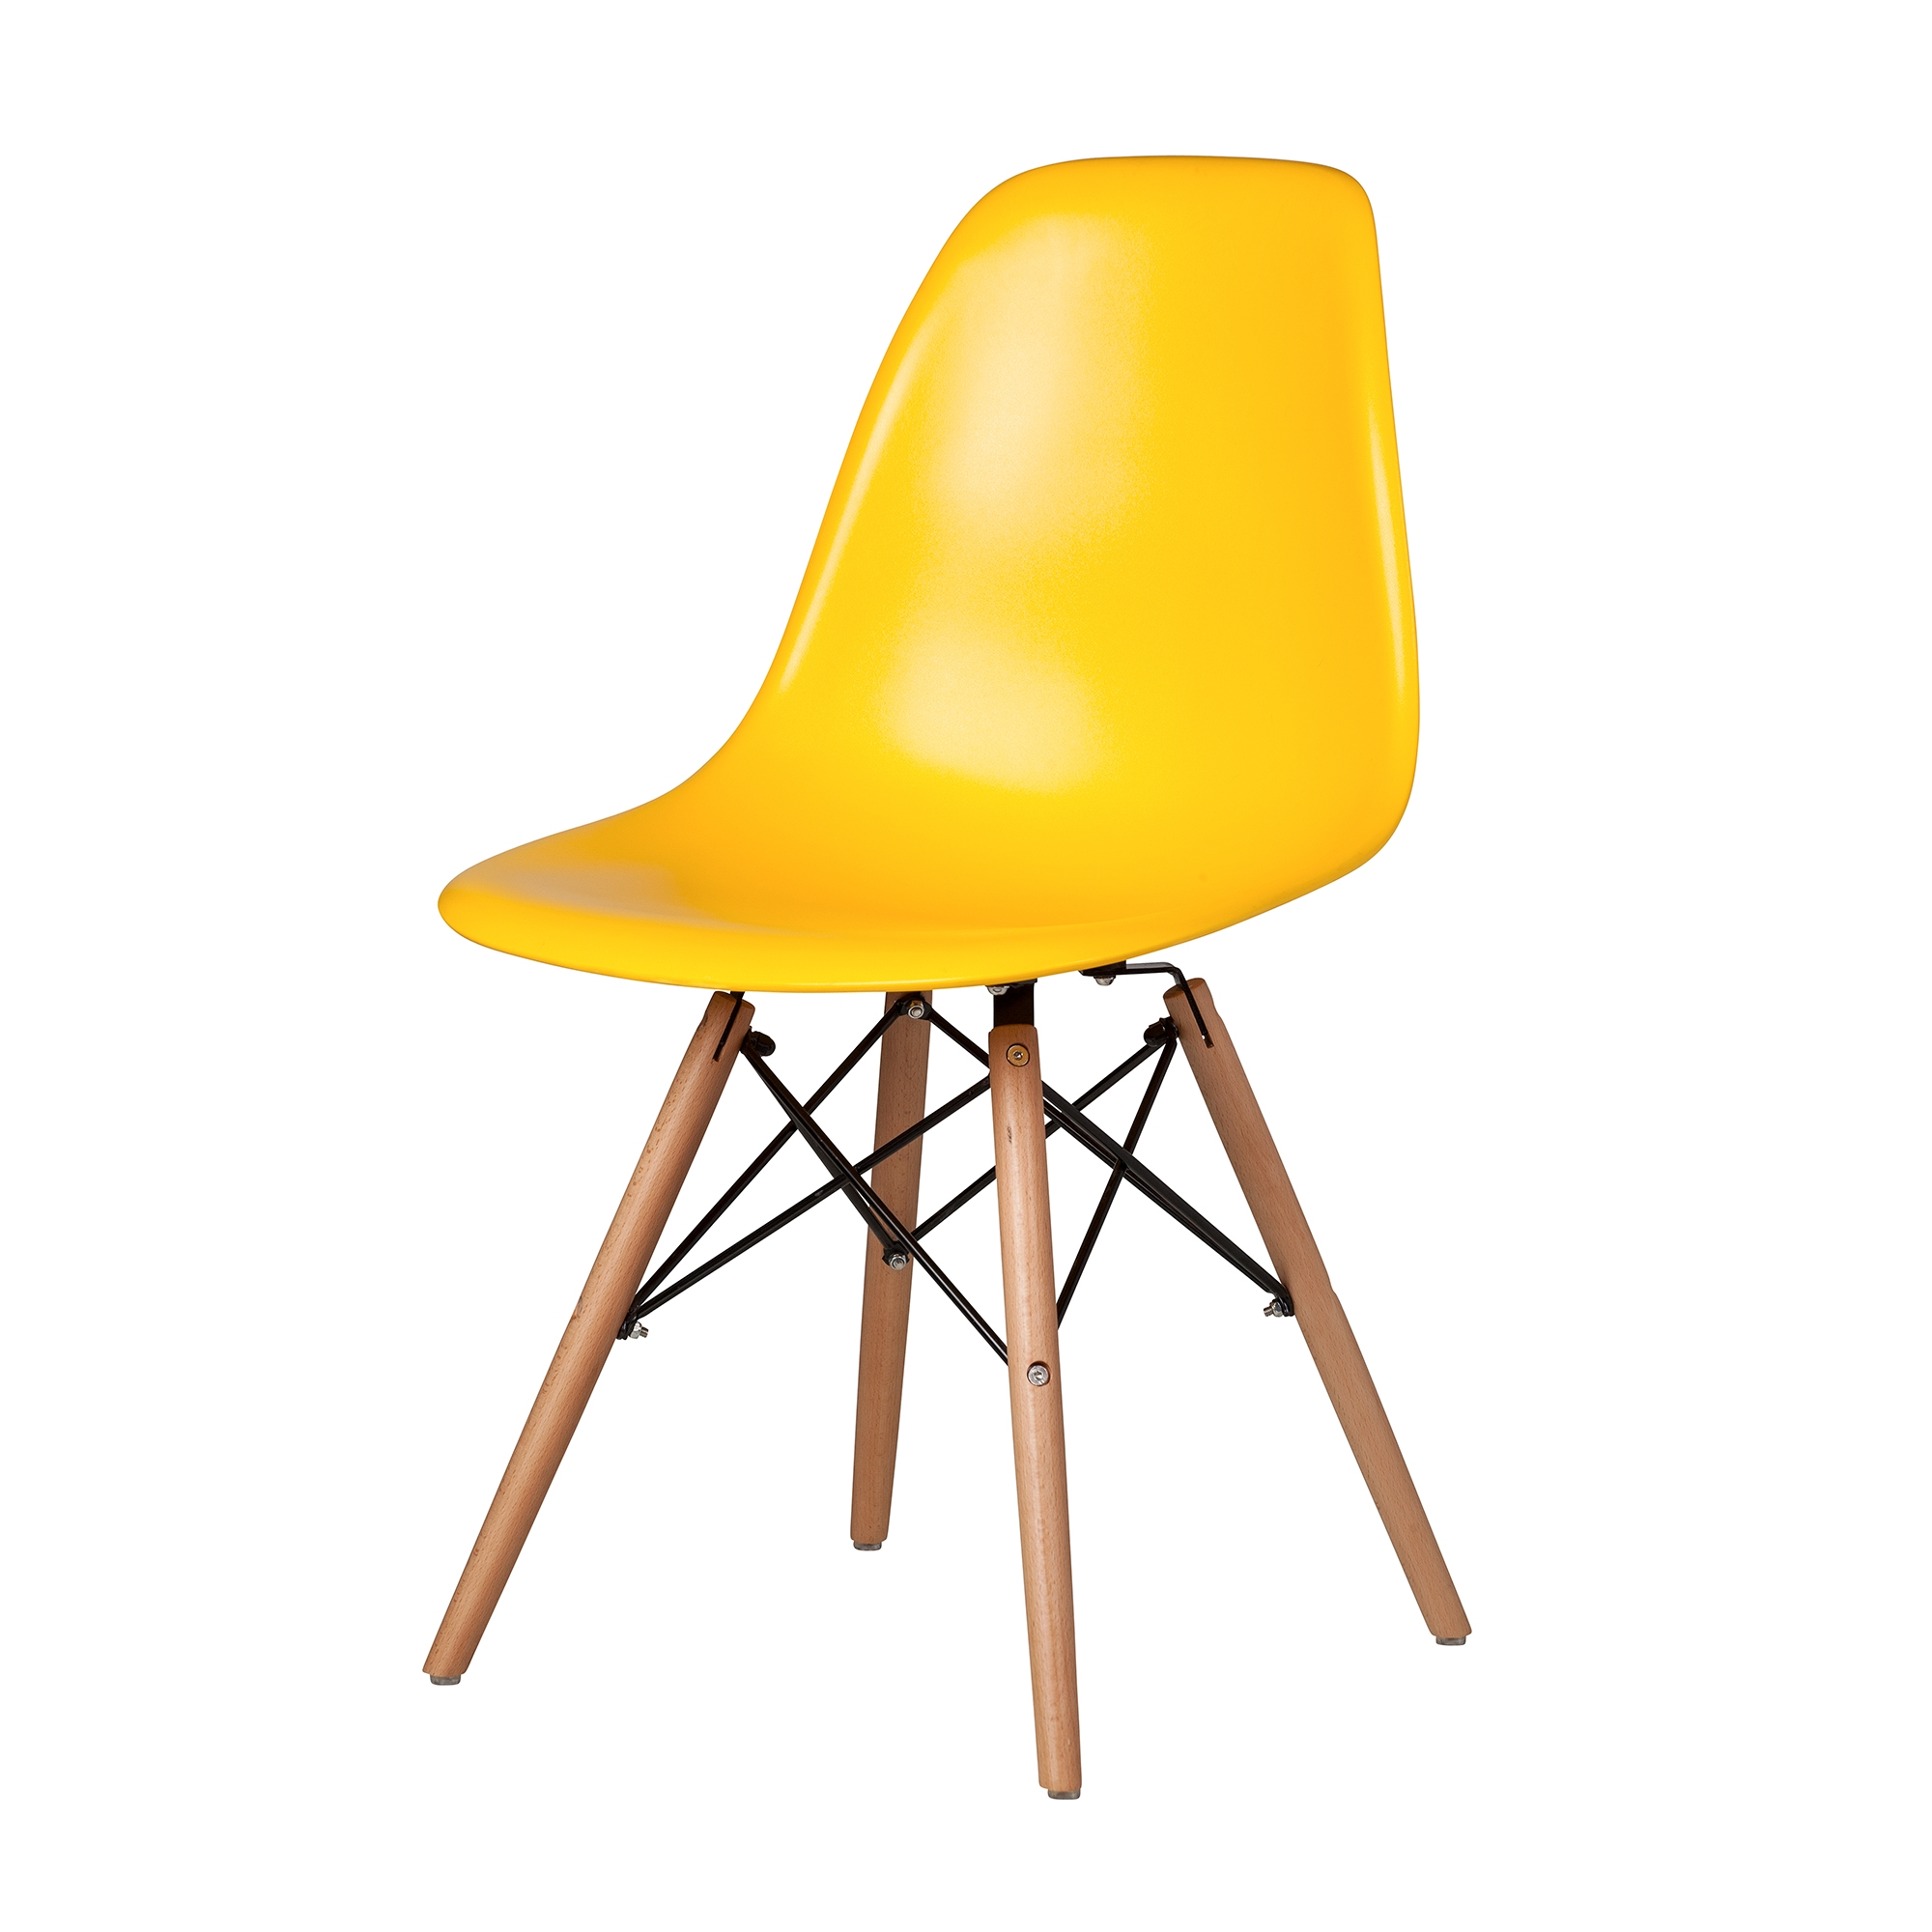 Eames Style Chair In Yellow With Dowel Legs The Khazana Home